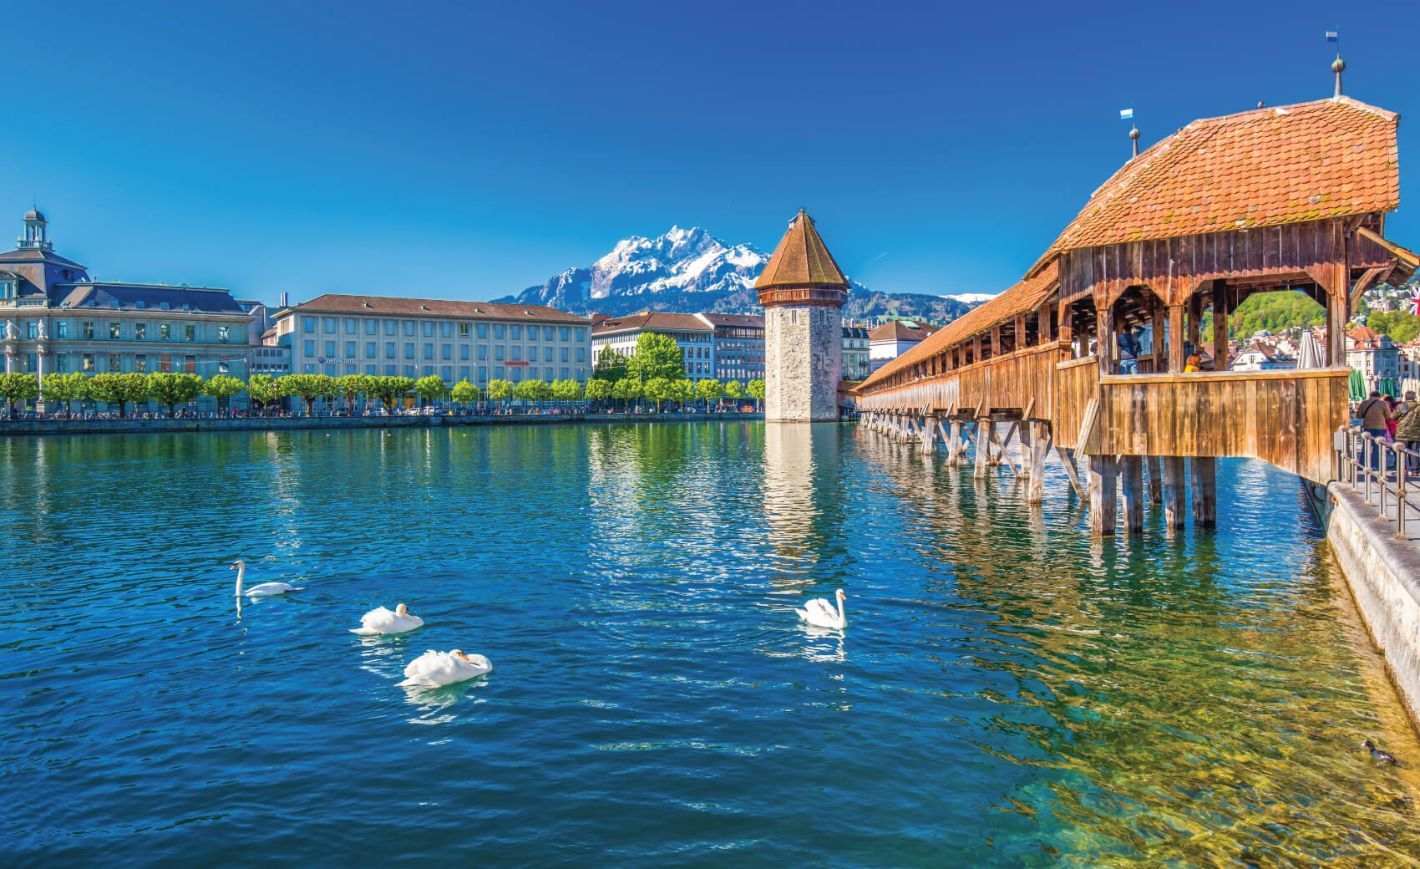 Historic city center of Lucerne with famous Chapel Bridge and lake Lucerne (Vierwaldstattersee)